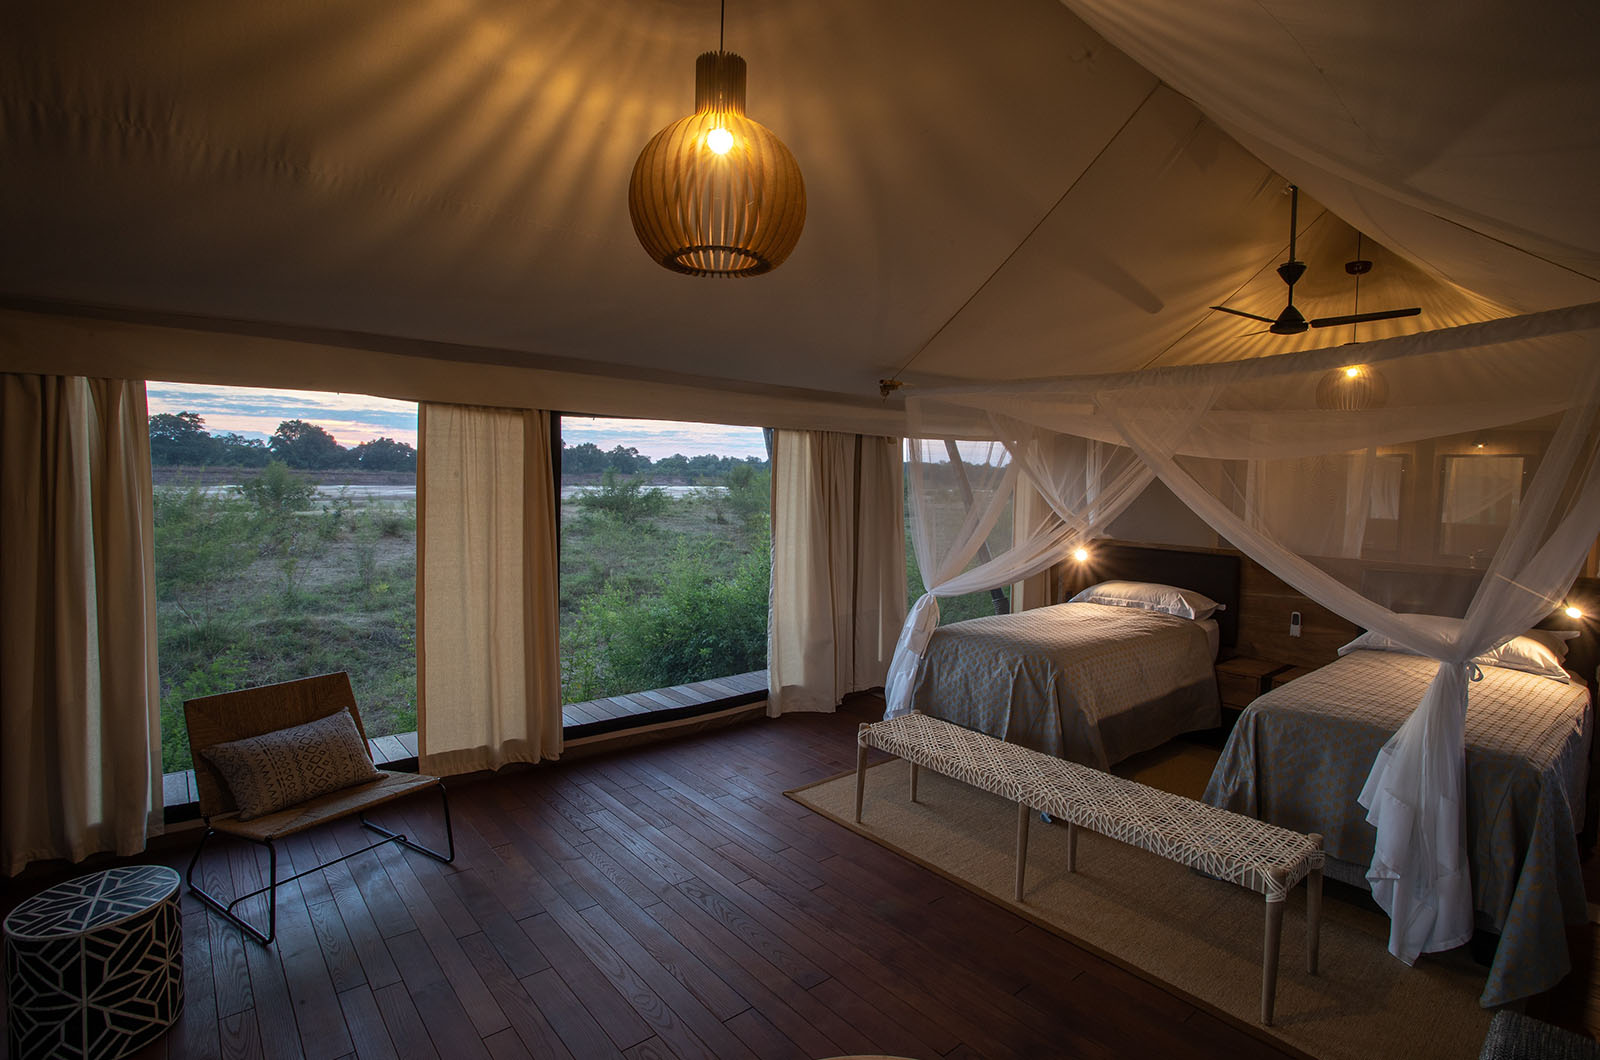 chikunto-lodge-zambia-in-style-safari-packages-lodges-luxury-tents-south-luangwa-beds-room